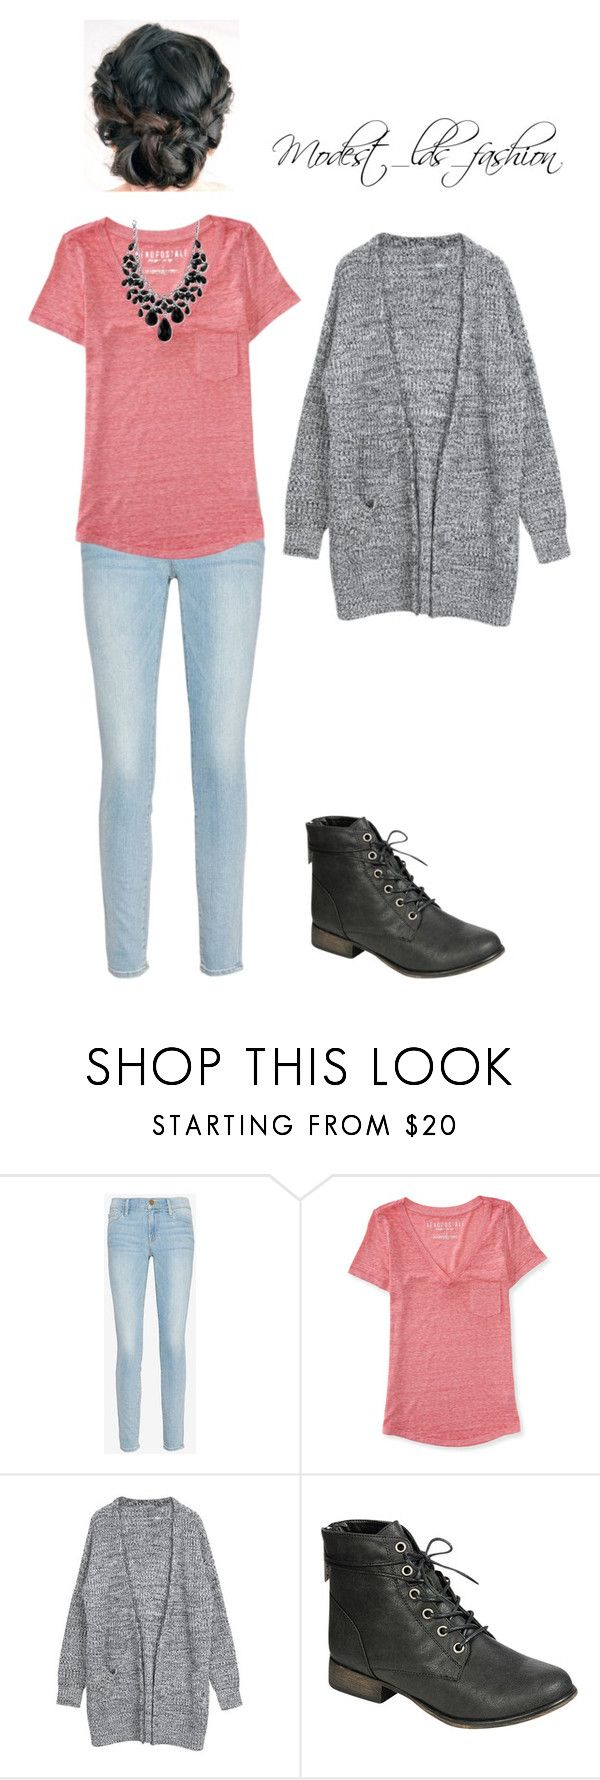 """""""Modest_lds_fashion"""" by modest-mormon-fashion ❤ liked on Polyvore featuring Frame, Aéropostale, Breckelle's and 2028"""